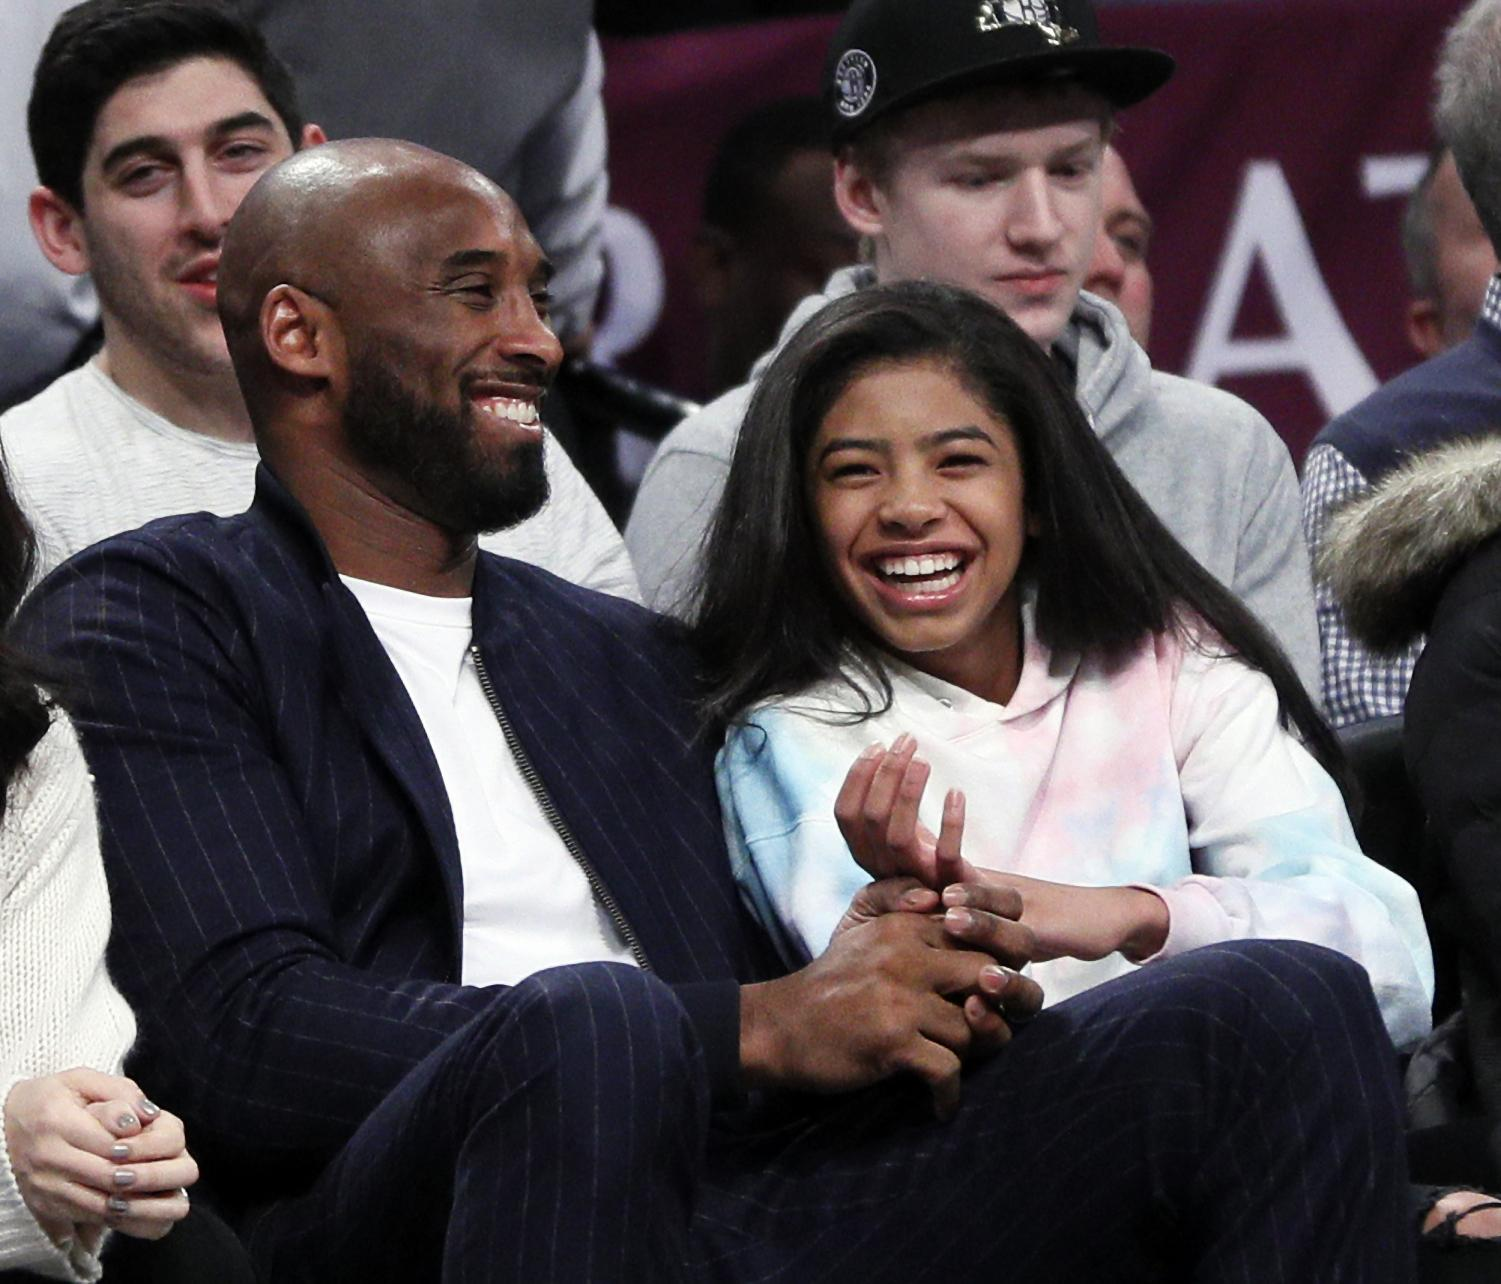 Kobe Bryant pictured with Gianna Bryant at a basketball game.